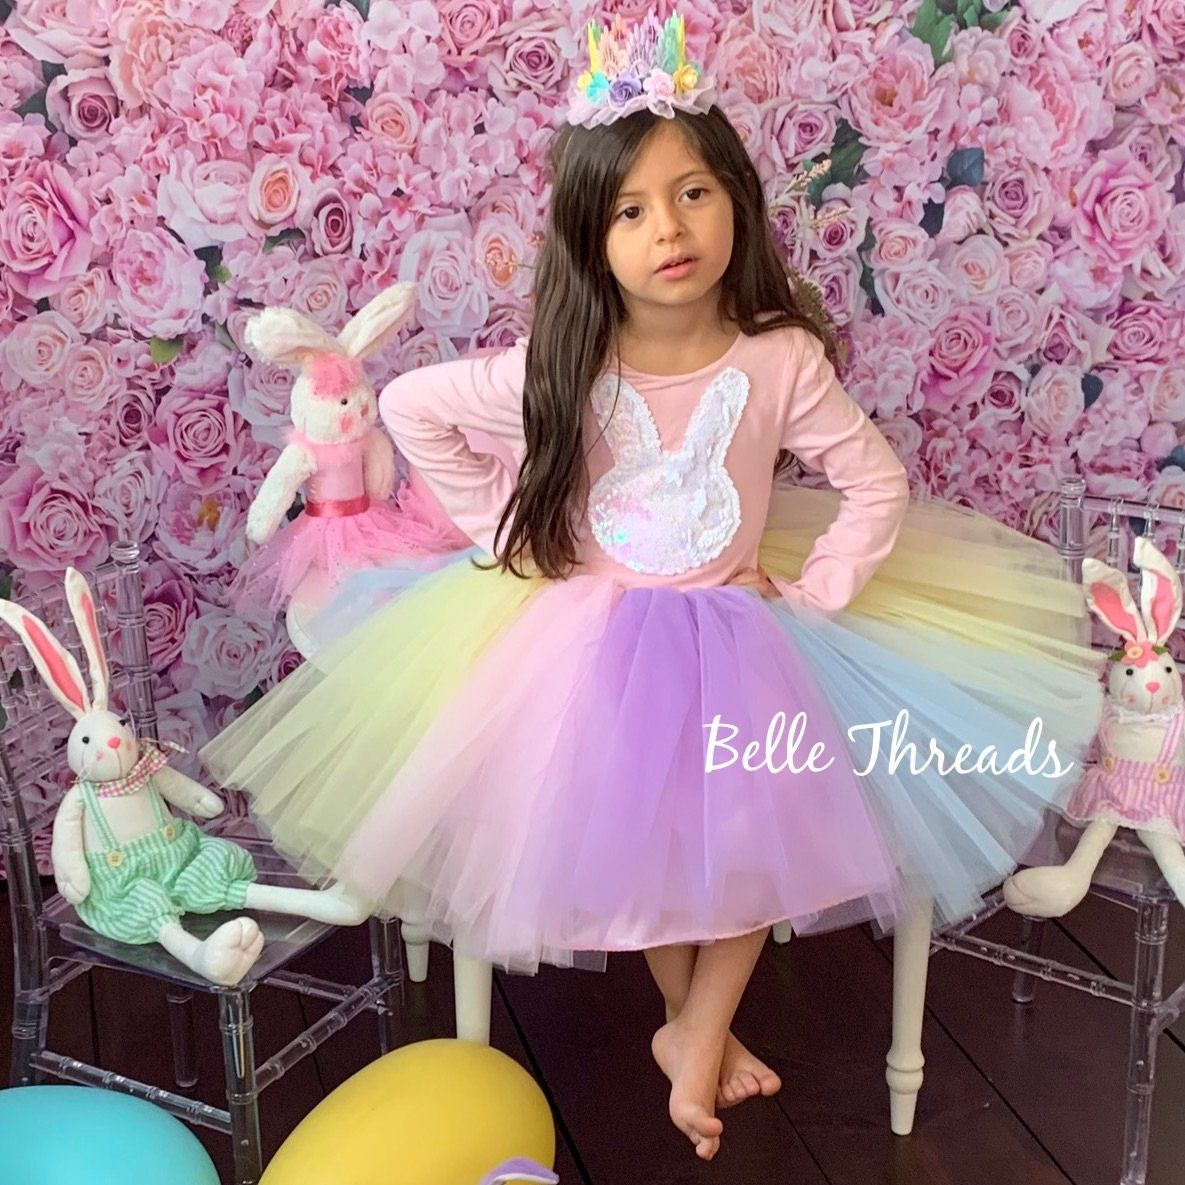 Rainbow Easter Bunny Tutu Dress made by Belle Threads